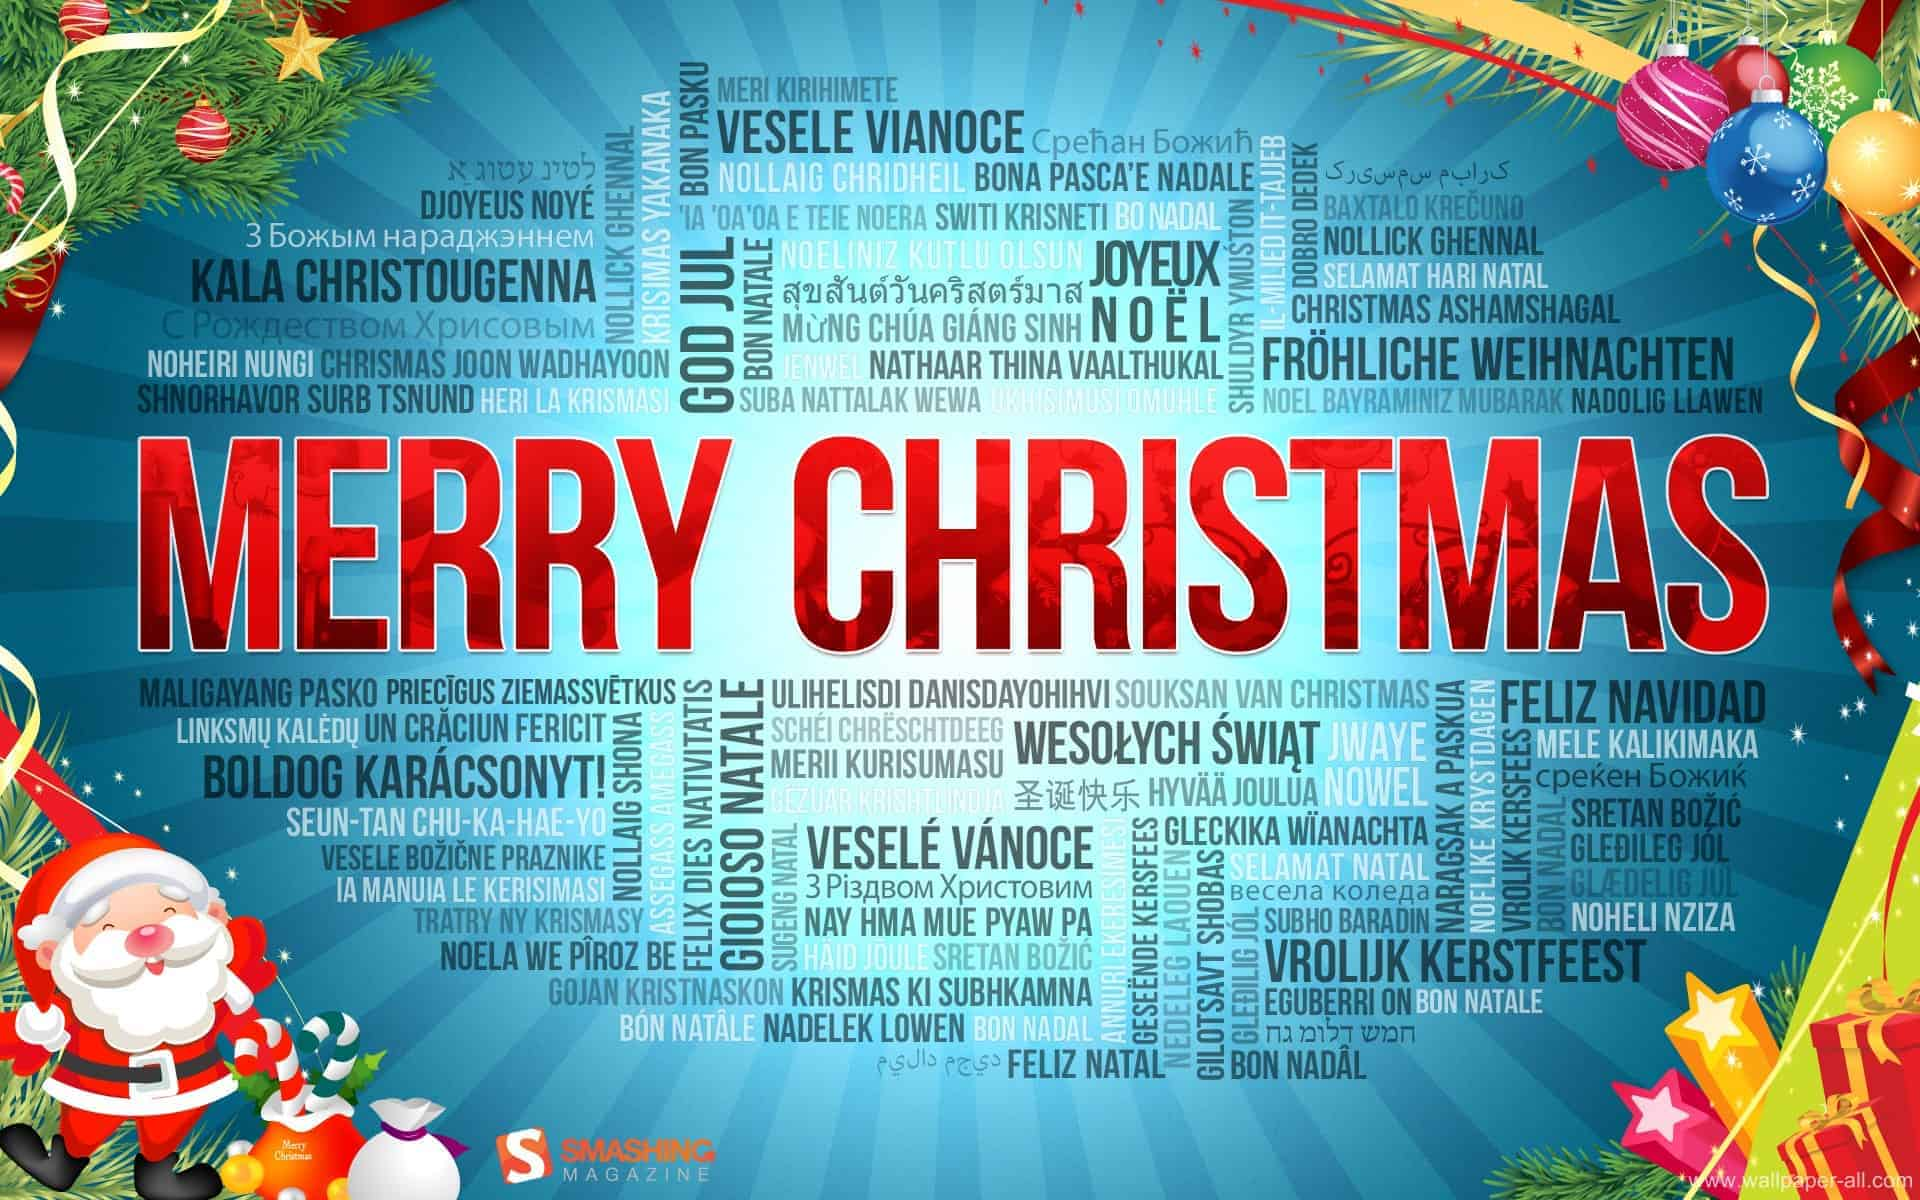 merry christmas in different languages - How Do You Say Merry Christmas In Italian